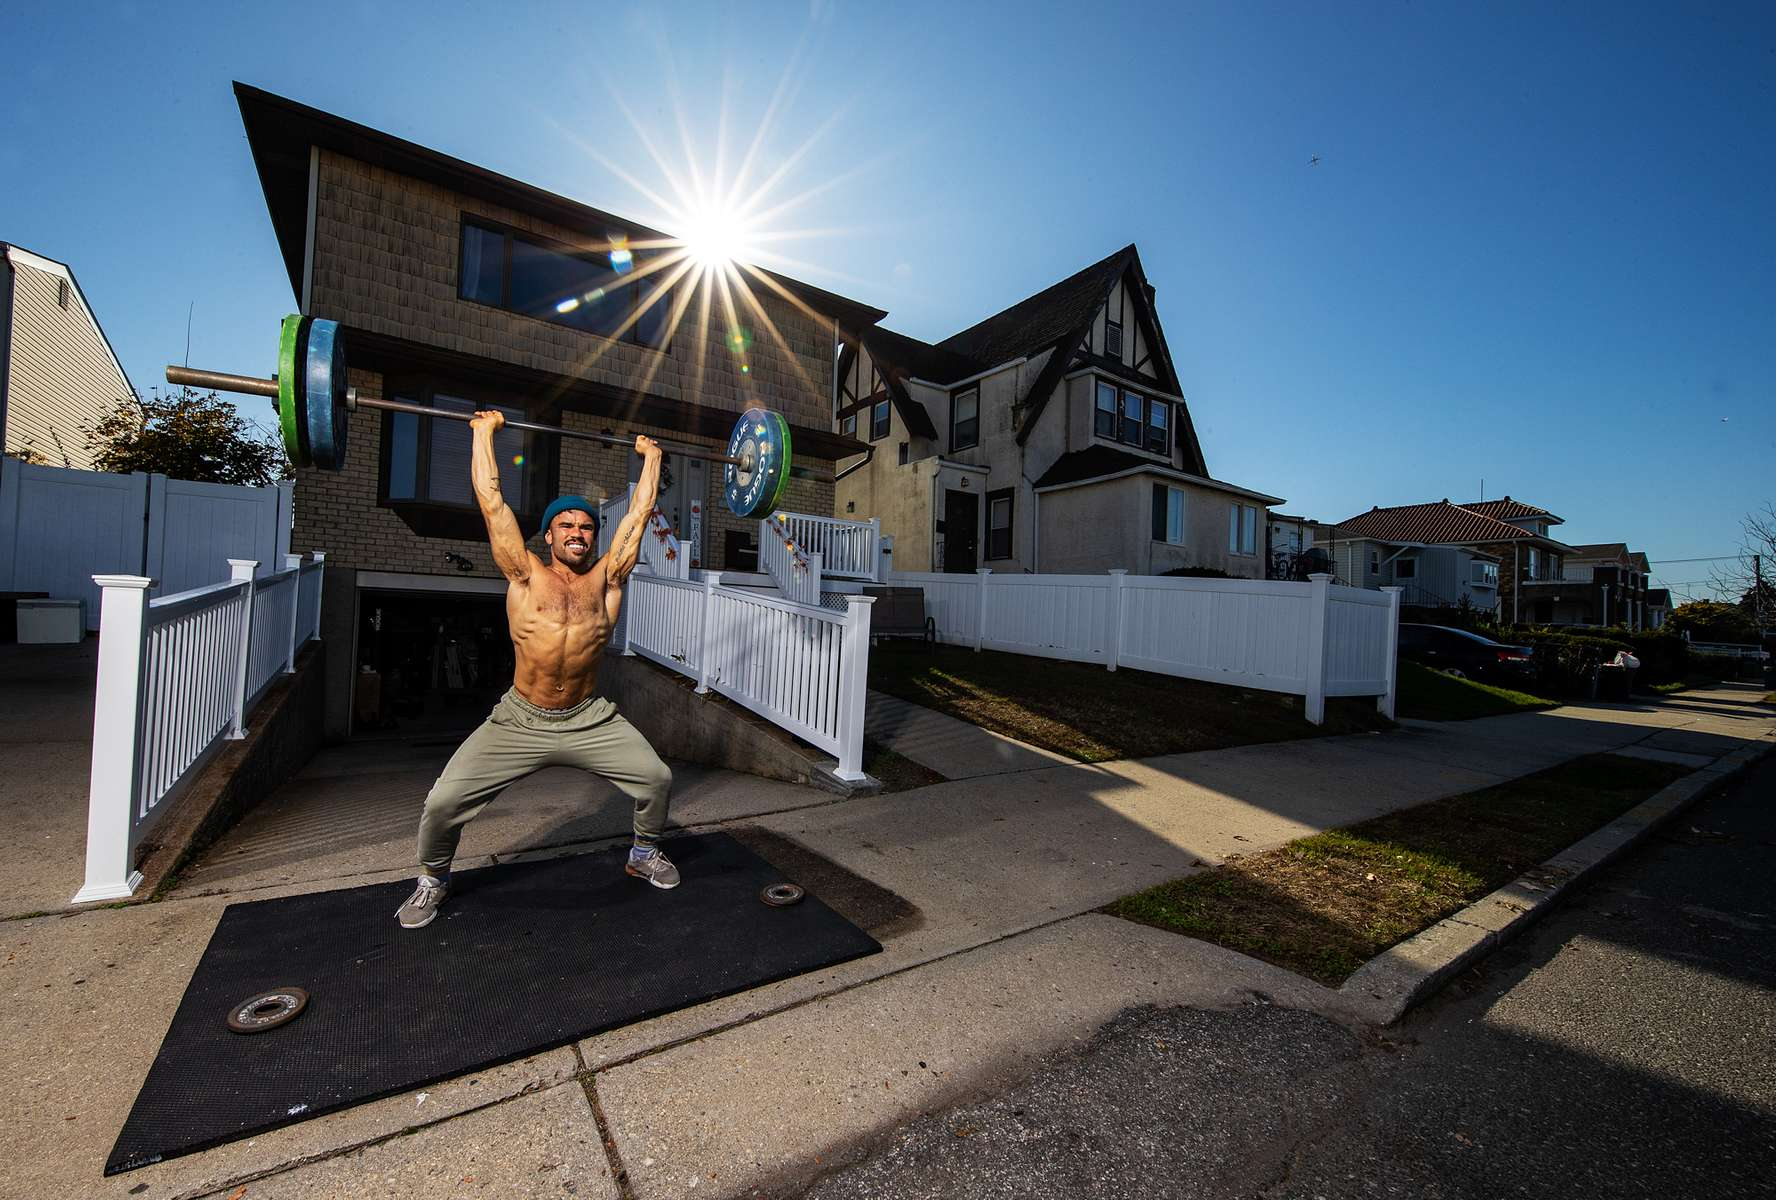 Dennis Guerrero, who is Co-owner, and Head Trainer of Life Outside the Box fitness trains outside his home on November 8th, 2020 in Long Beach, New York.   In March of 2014, Dennis Guerrero and his business partner opened a gym on Long Island. The pair shared a passion for fitness, a dream of creating a local community of like-minded people and a willingness to take a risk. Over the next six years, hundreds of members experienced and embraced a unique environment that fostered a palpable energy, helping athletes of all ages and abilities reach their potential.  The gym became a place to share achievements, work through losses and overcome illness. But like so many other businesses, it seemingly had no way of overcoming the financial impact and ongoing uncertainty of a global pandemic. With the arrival of Covid-19, the gym shut its doors back in March, with no idea when it would reopen. The owners, though, were far from done. They lent out every piece of equipment they owned to the gym's members, continued to pay their staff and worked to set up outdoor classes in hopes of keeping their membership active and healthy. As the shutdown stretched on, it became clear that the physical gym was closed for good.  They have since reinvented themselves and are now called Life Outside the Box.  Their business model has changed drastically, and all their workouts have gone virtual.  The workouts are conducted by a small group of fitness trainers led by Guerrero.  The members pay a monthly fee and can take live Zoom fitness classes.  They are coached by the virtual trainers in real time.  More and more people have reconstructed their garages, spare rooms, backyards, and basements into home gyms since the COVID-19 pandemic hit the United States.